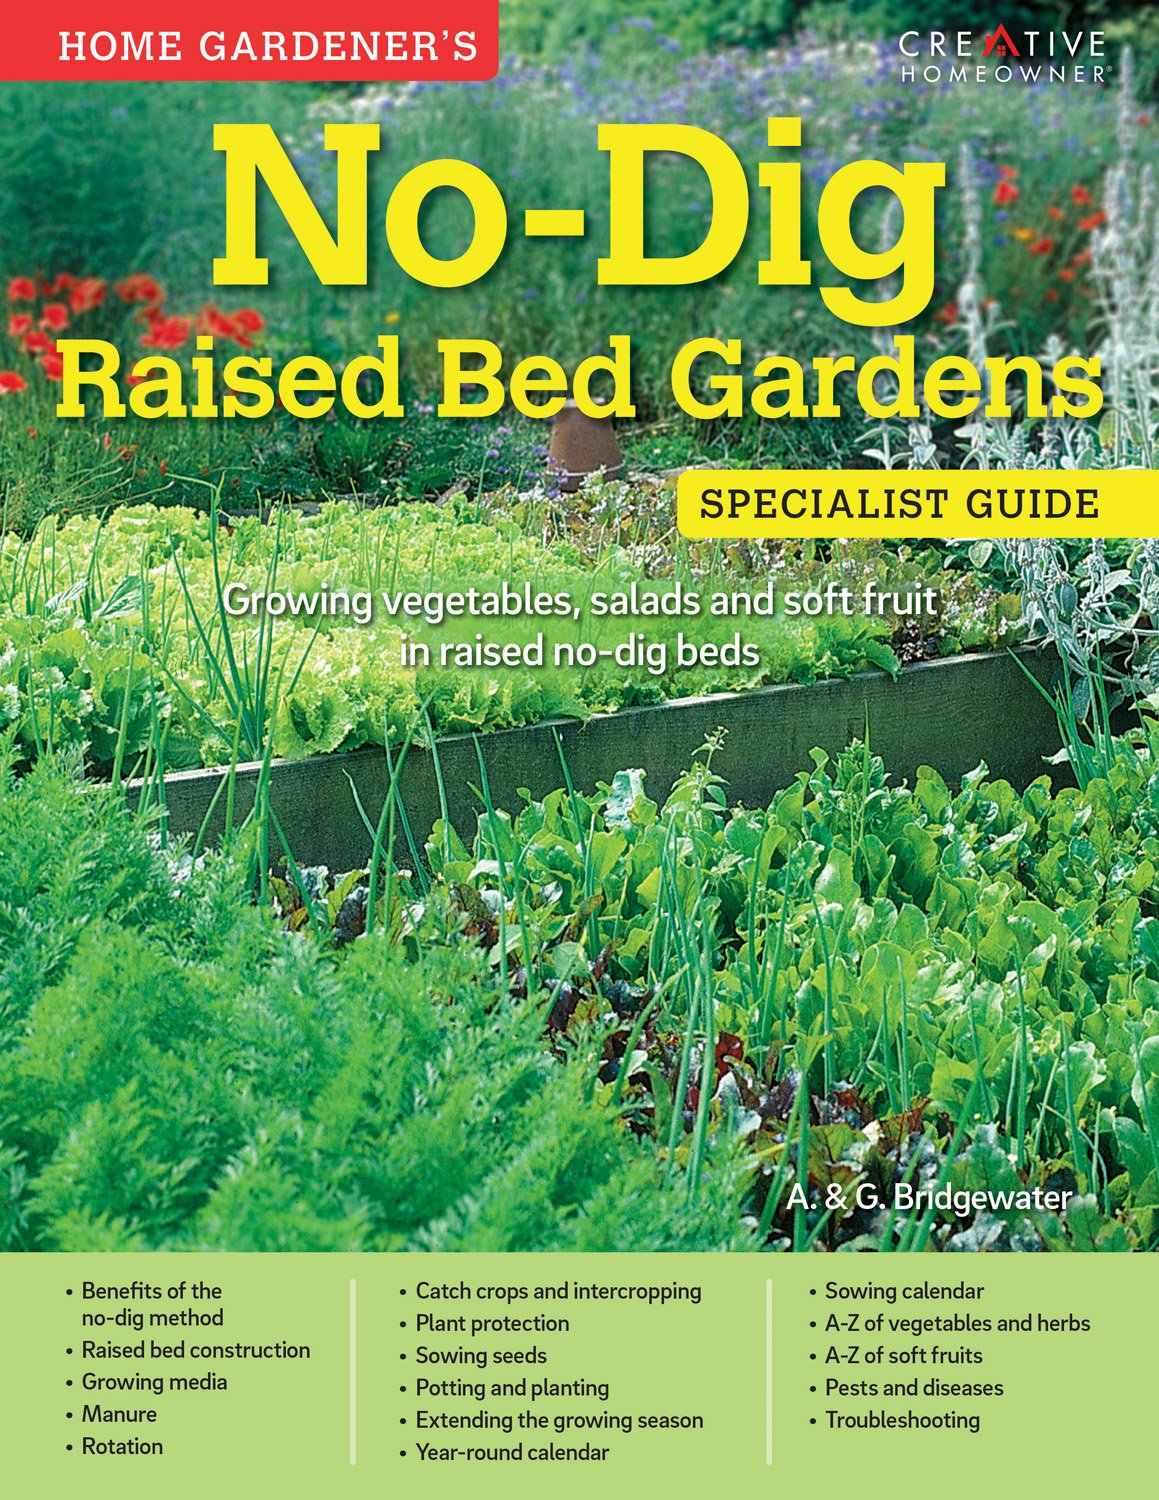 Home Gardener's No-Dig Raised Bed Gardens: Growing Vegetables, Salads and Soft Fruit in Raised No-Dig Beds (Creative Homeowner) Over 200 Photos, ...